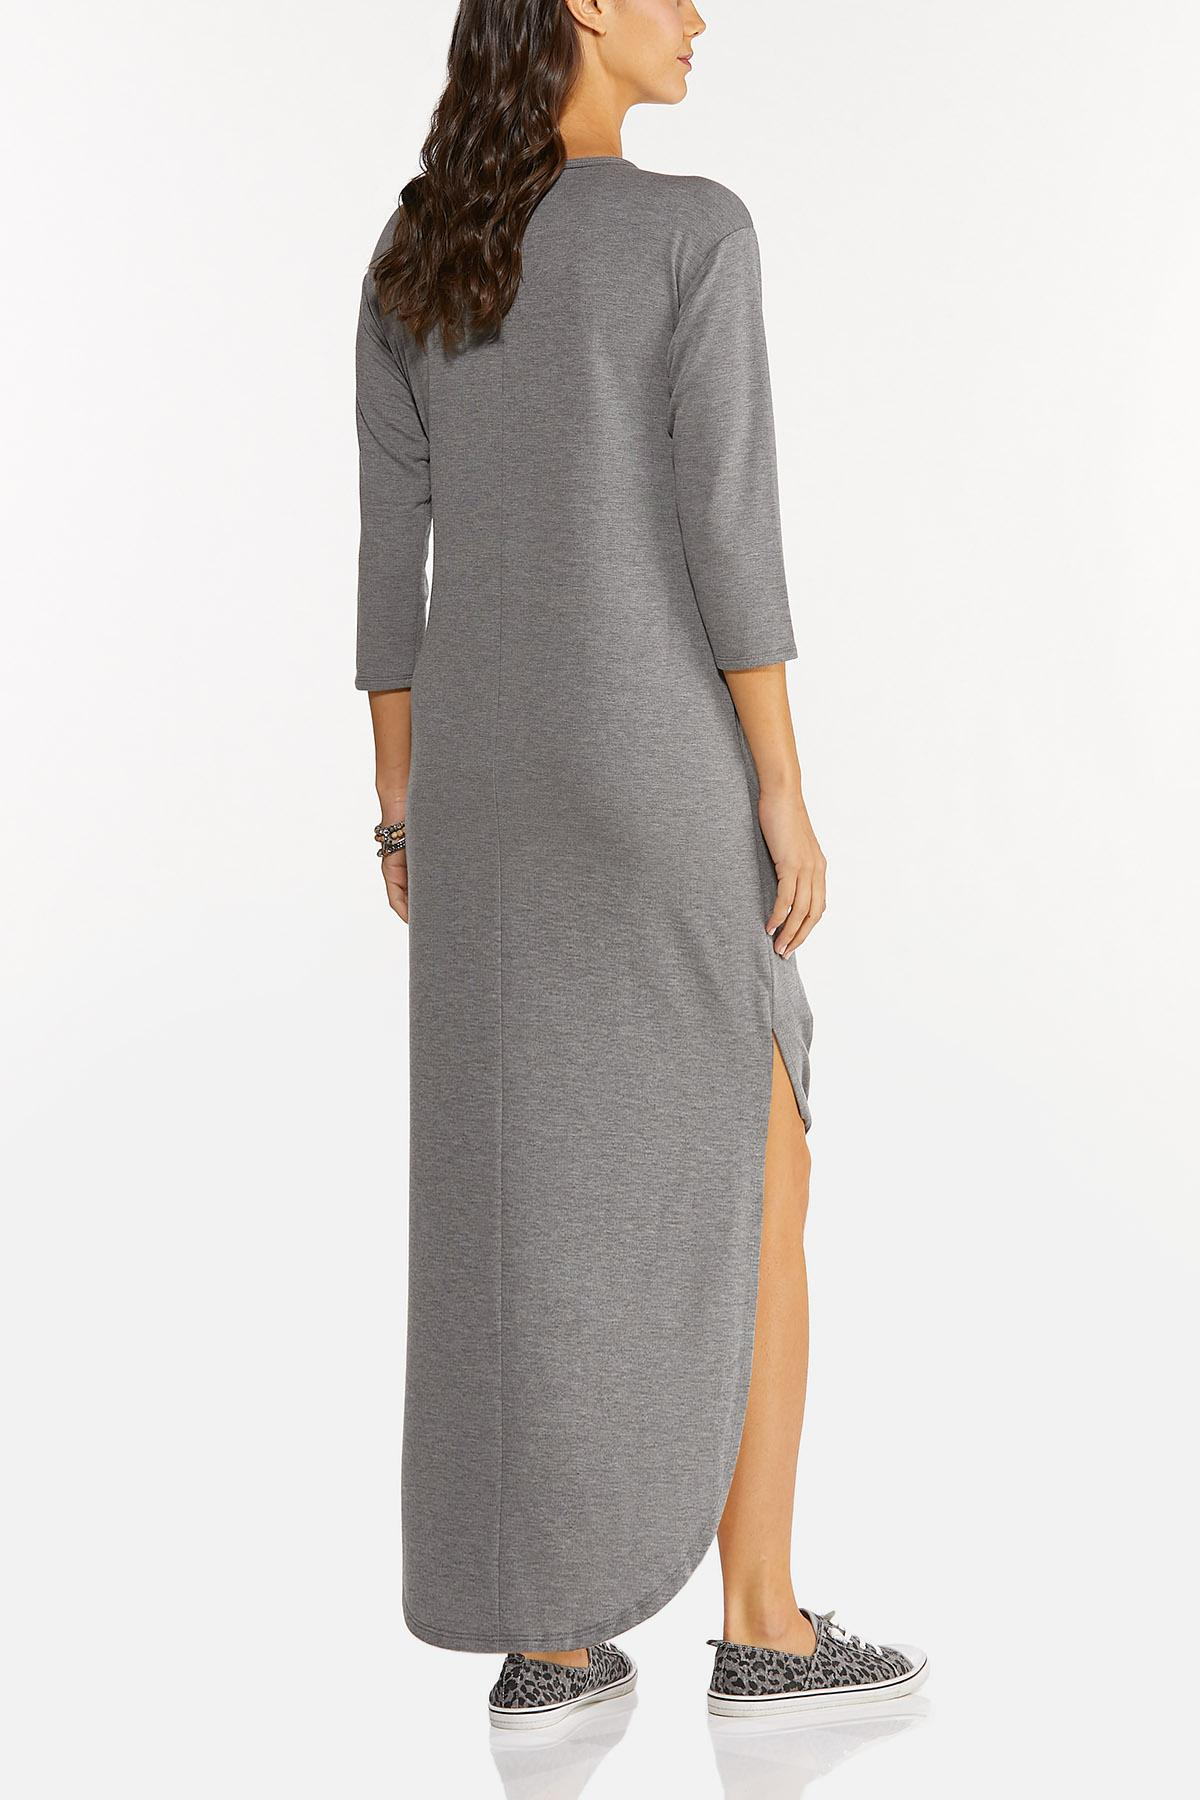 Knotted French Terry Maxi Dress (Item #44678003)